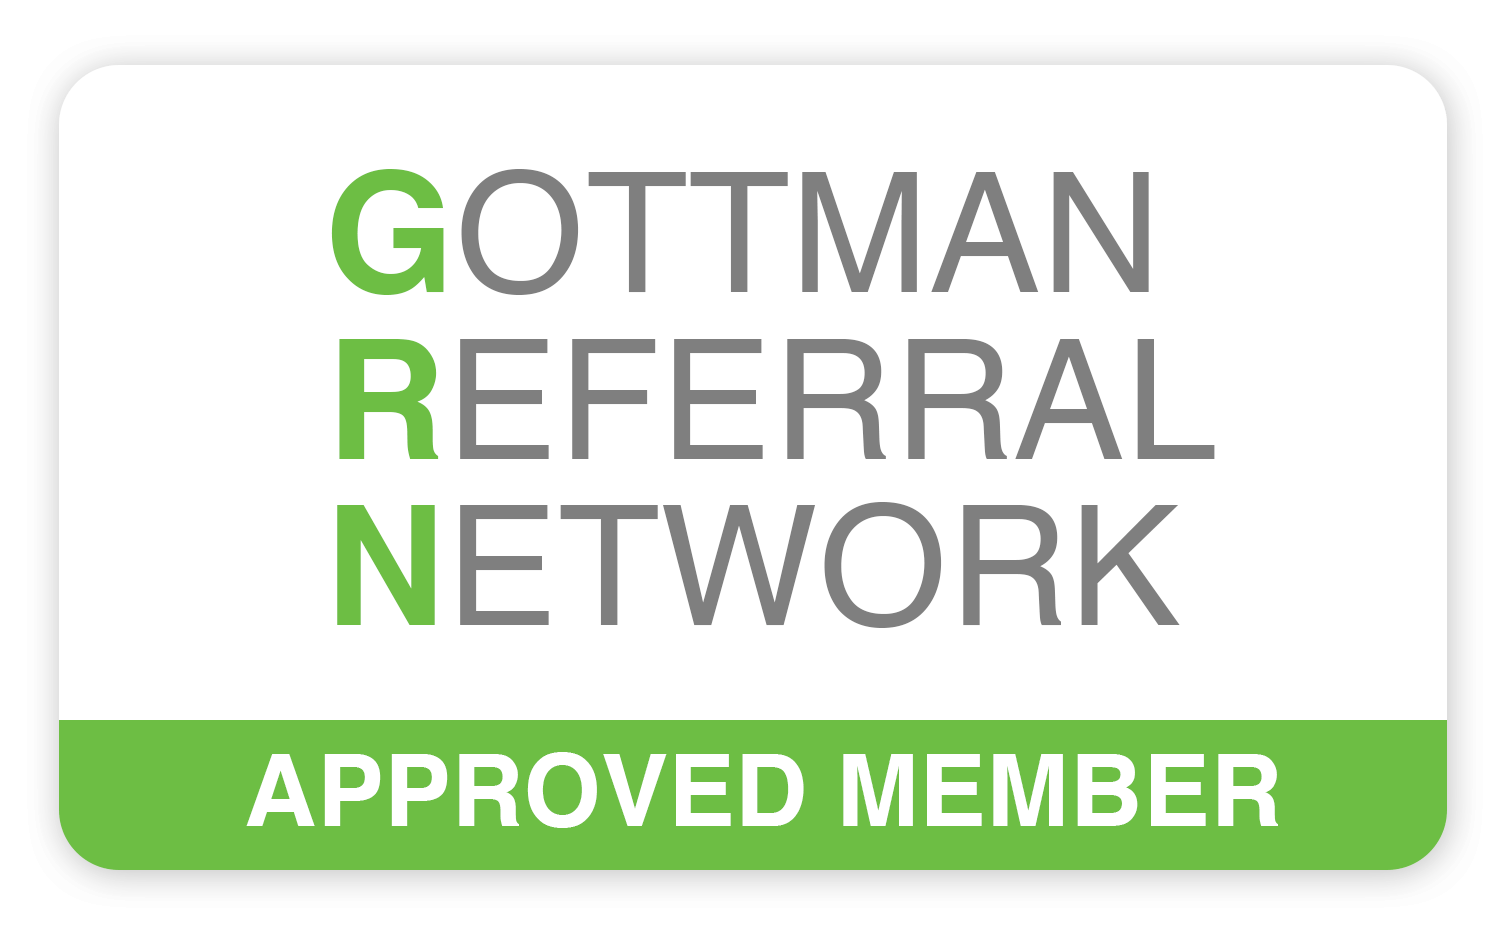 Nancy  Georges's profile on the Gottman Referral Network